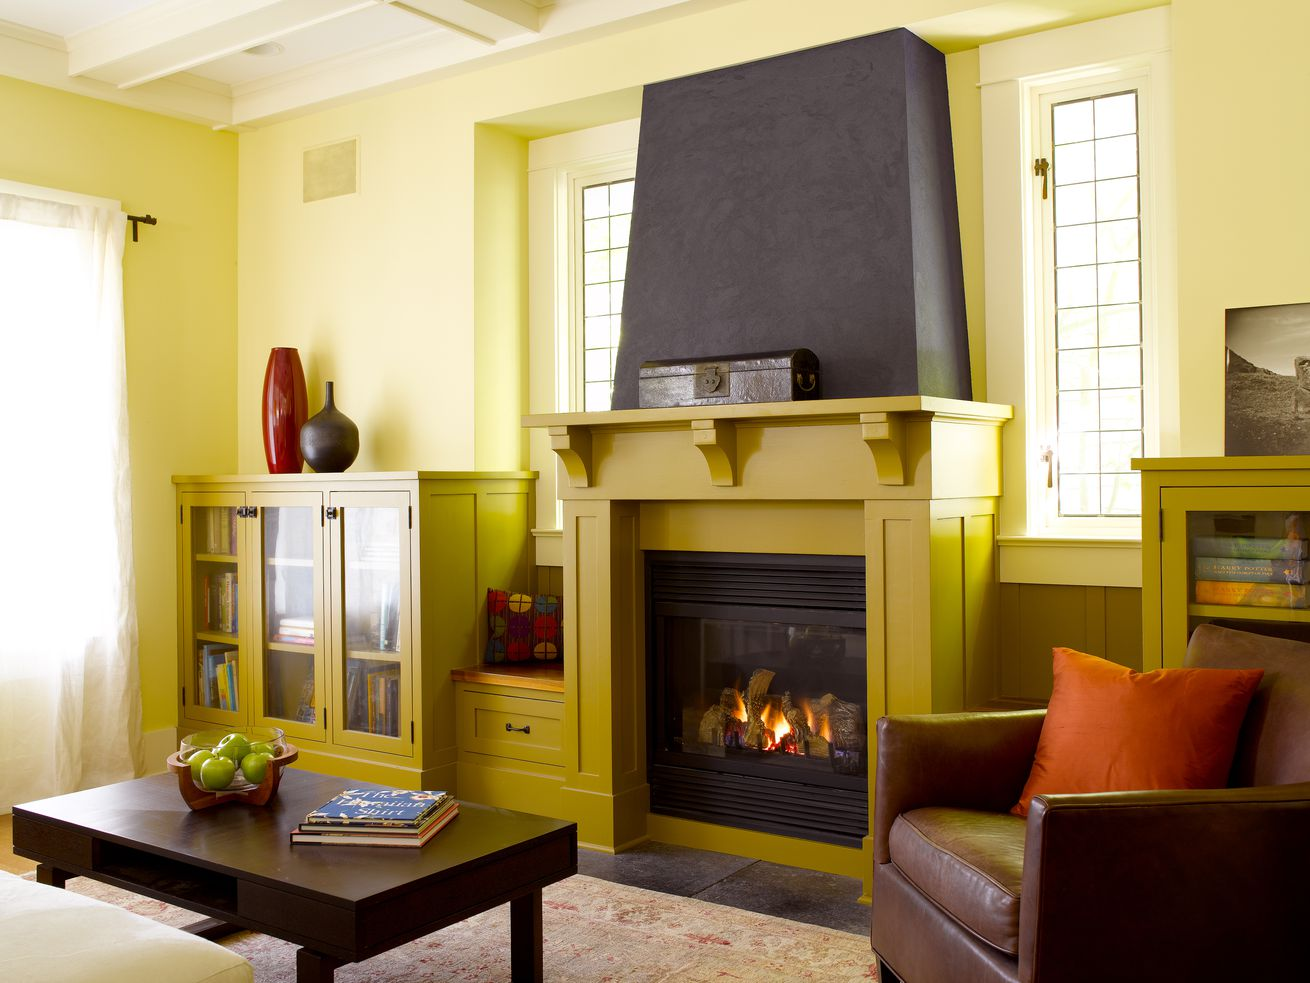 Gas Fireplace in Living Room of Home